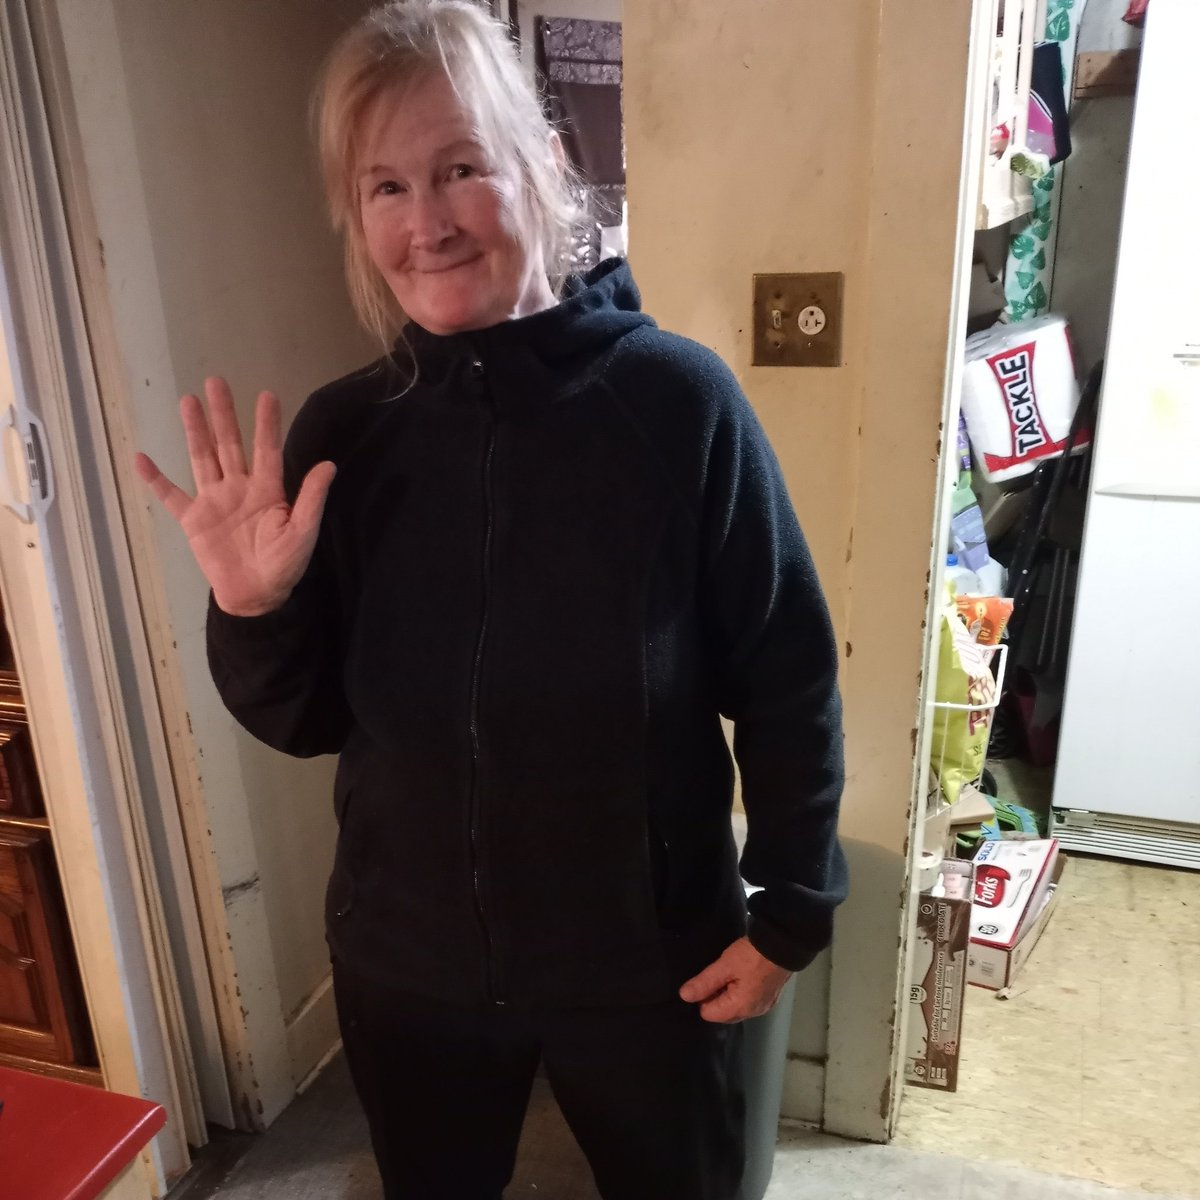 @chamath @Opendoor @chamath This my mom Laura Wamsley she just lost her house [no wildfire inshrance] to the #ObenchainFire #EaglePoint #OregonFires #SouthernOregon #OregonFires2020 #Oregon #OregonStrong  https://t.co/GylvwCK9d3 https://t.co/83oB0GbhLh please share 🙏